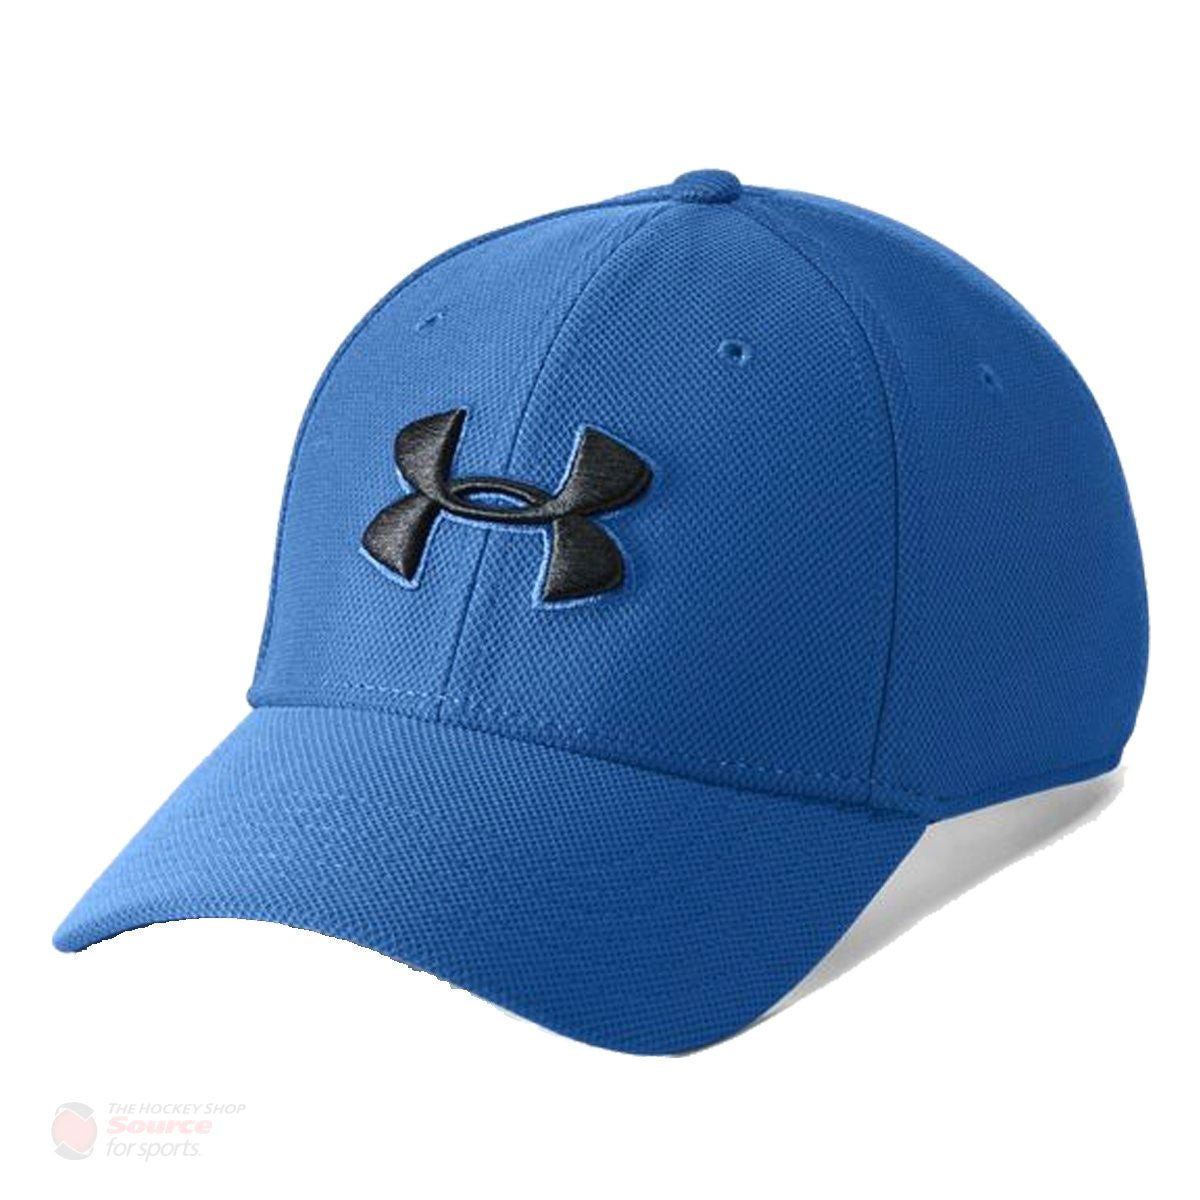 Under Armour Blitzing 3.0 Flexfit Hat